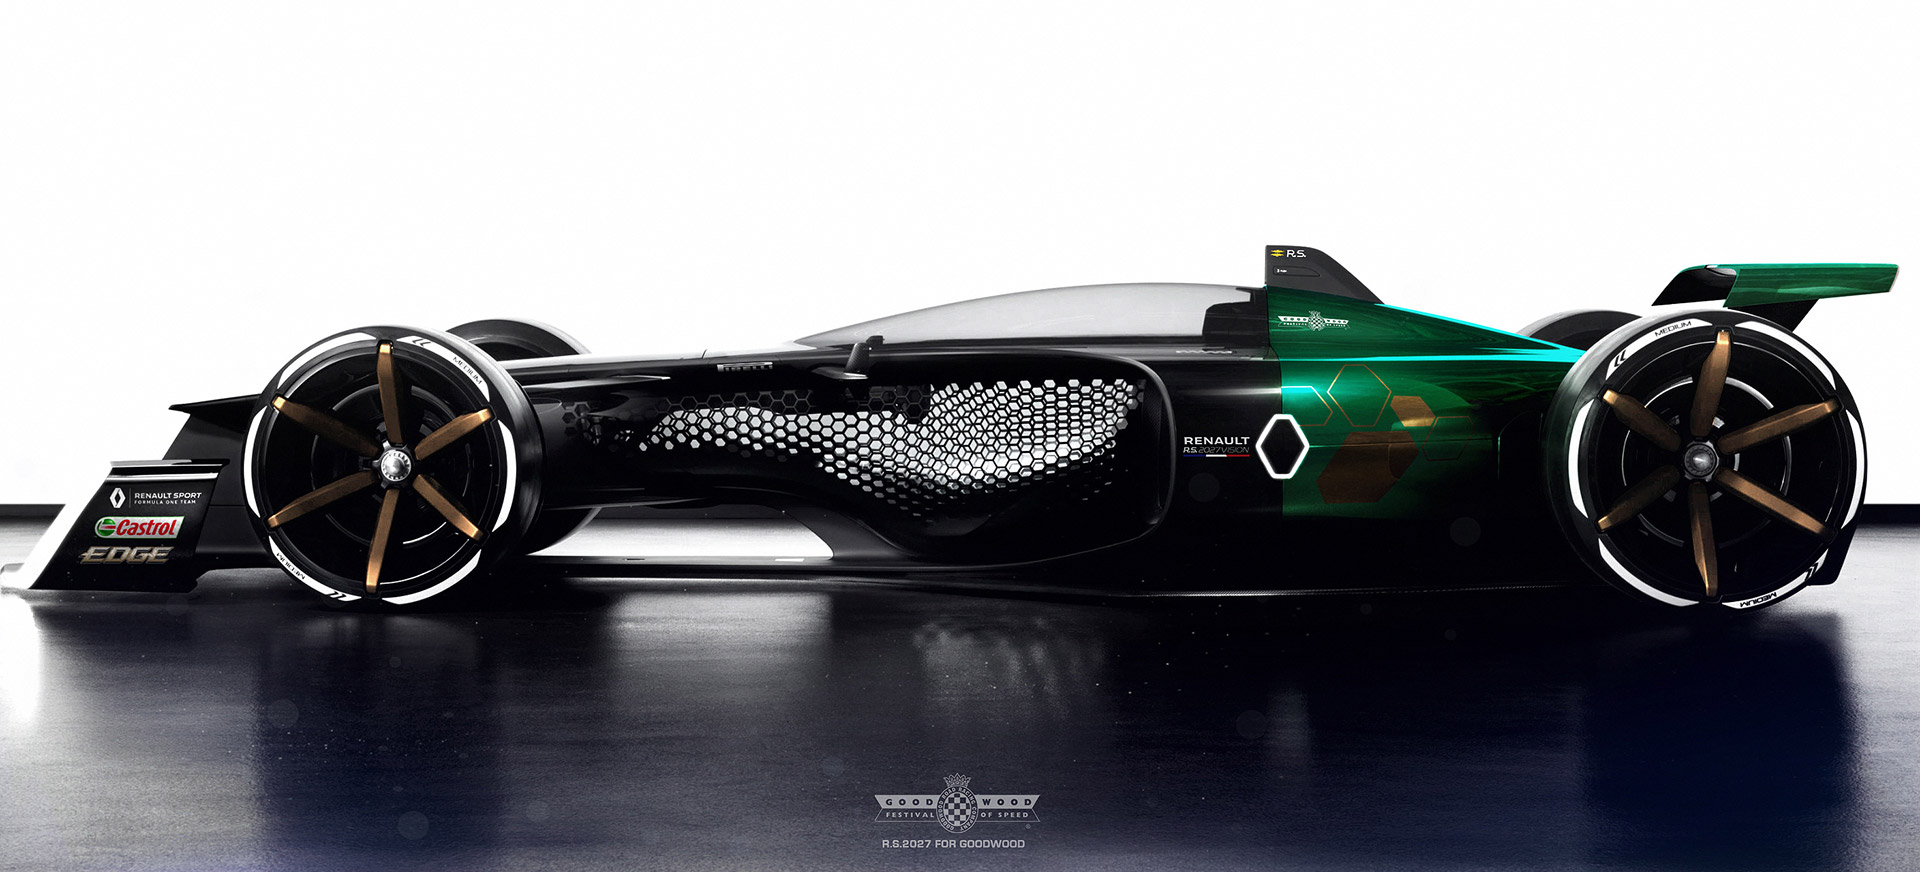 Renault RS 2027 Vision Concept FOS